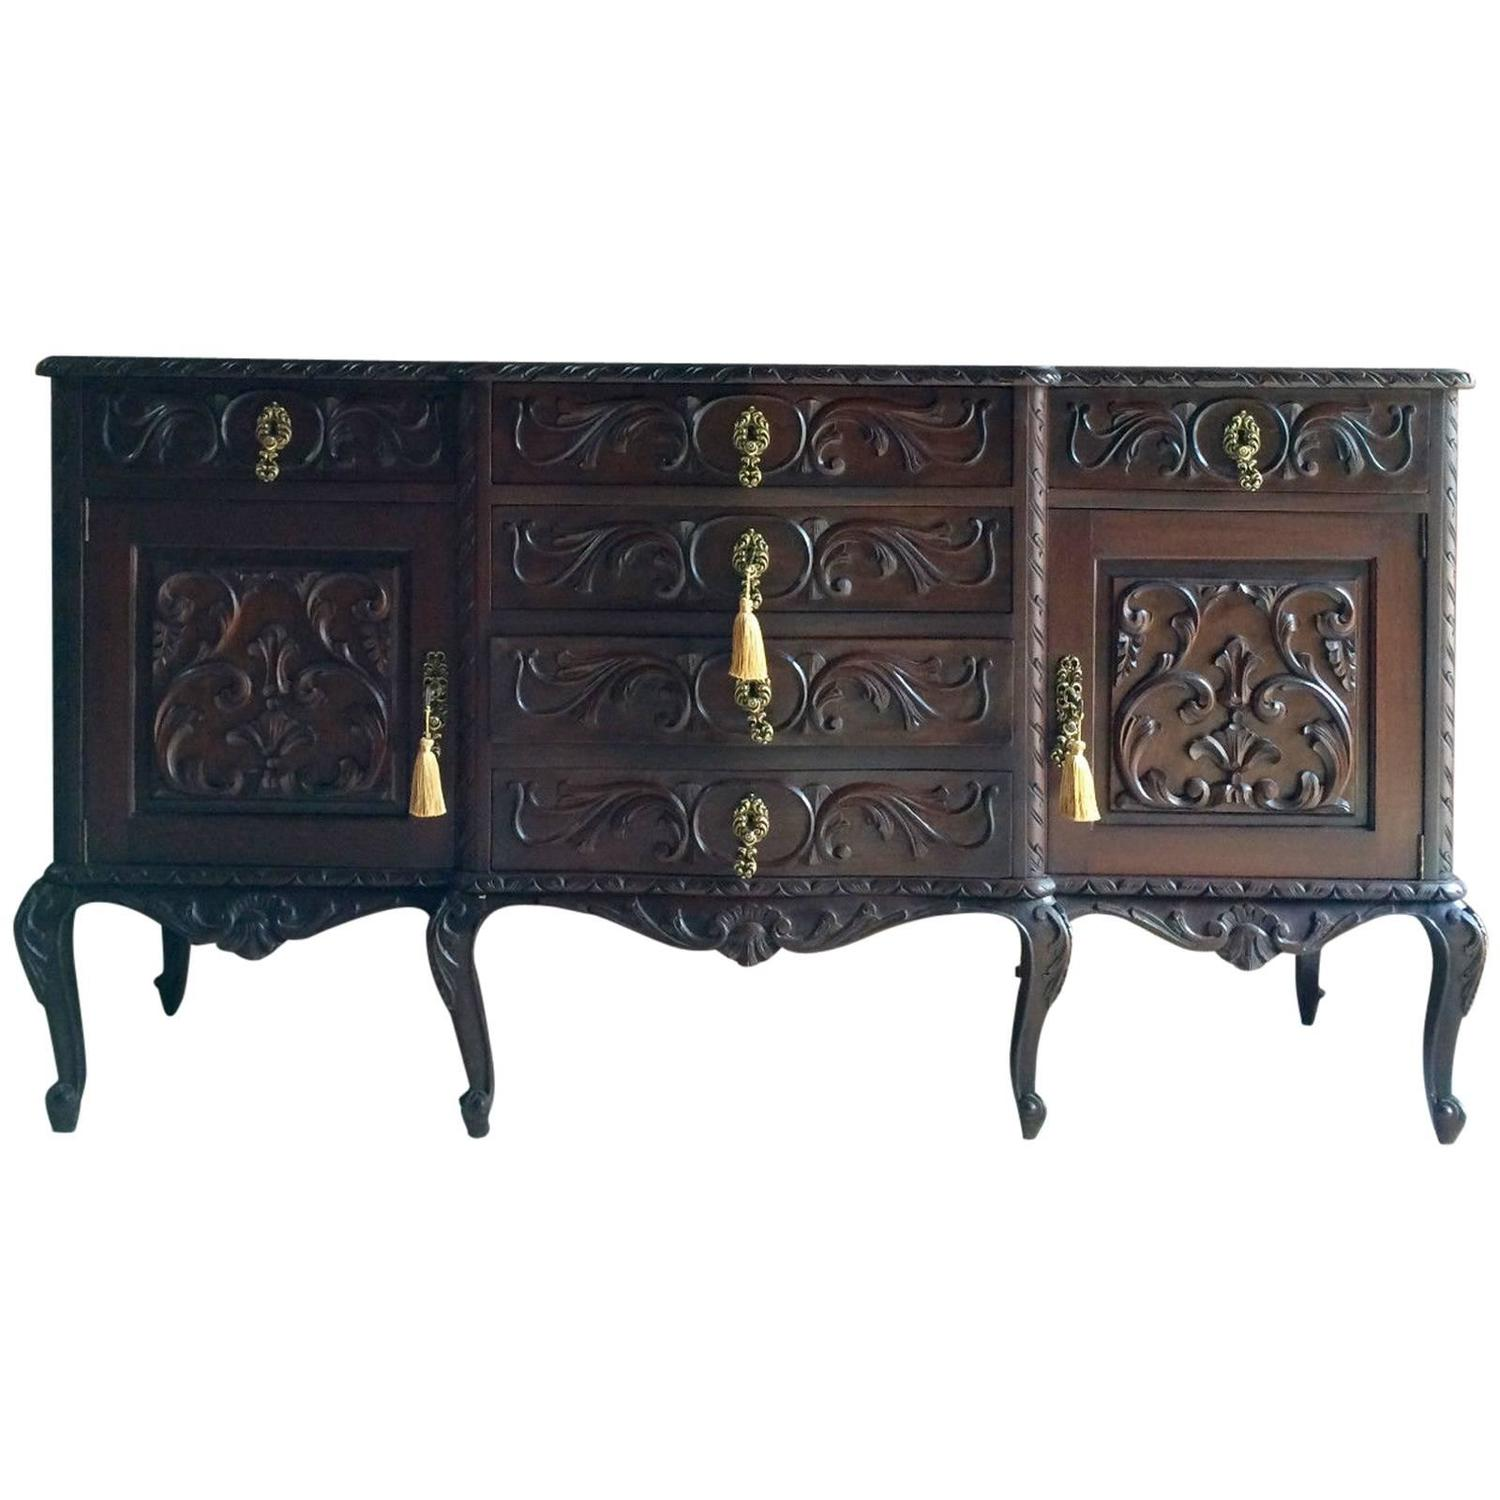 antique style sideboard credenza cabinet buffet spanish style carved at 1stdibs. Black Bedroom Furniture Sets. Home Design Ideas